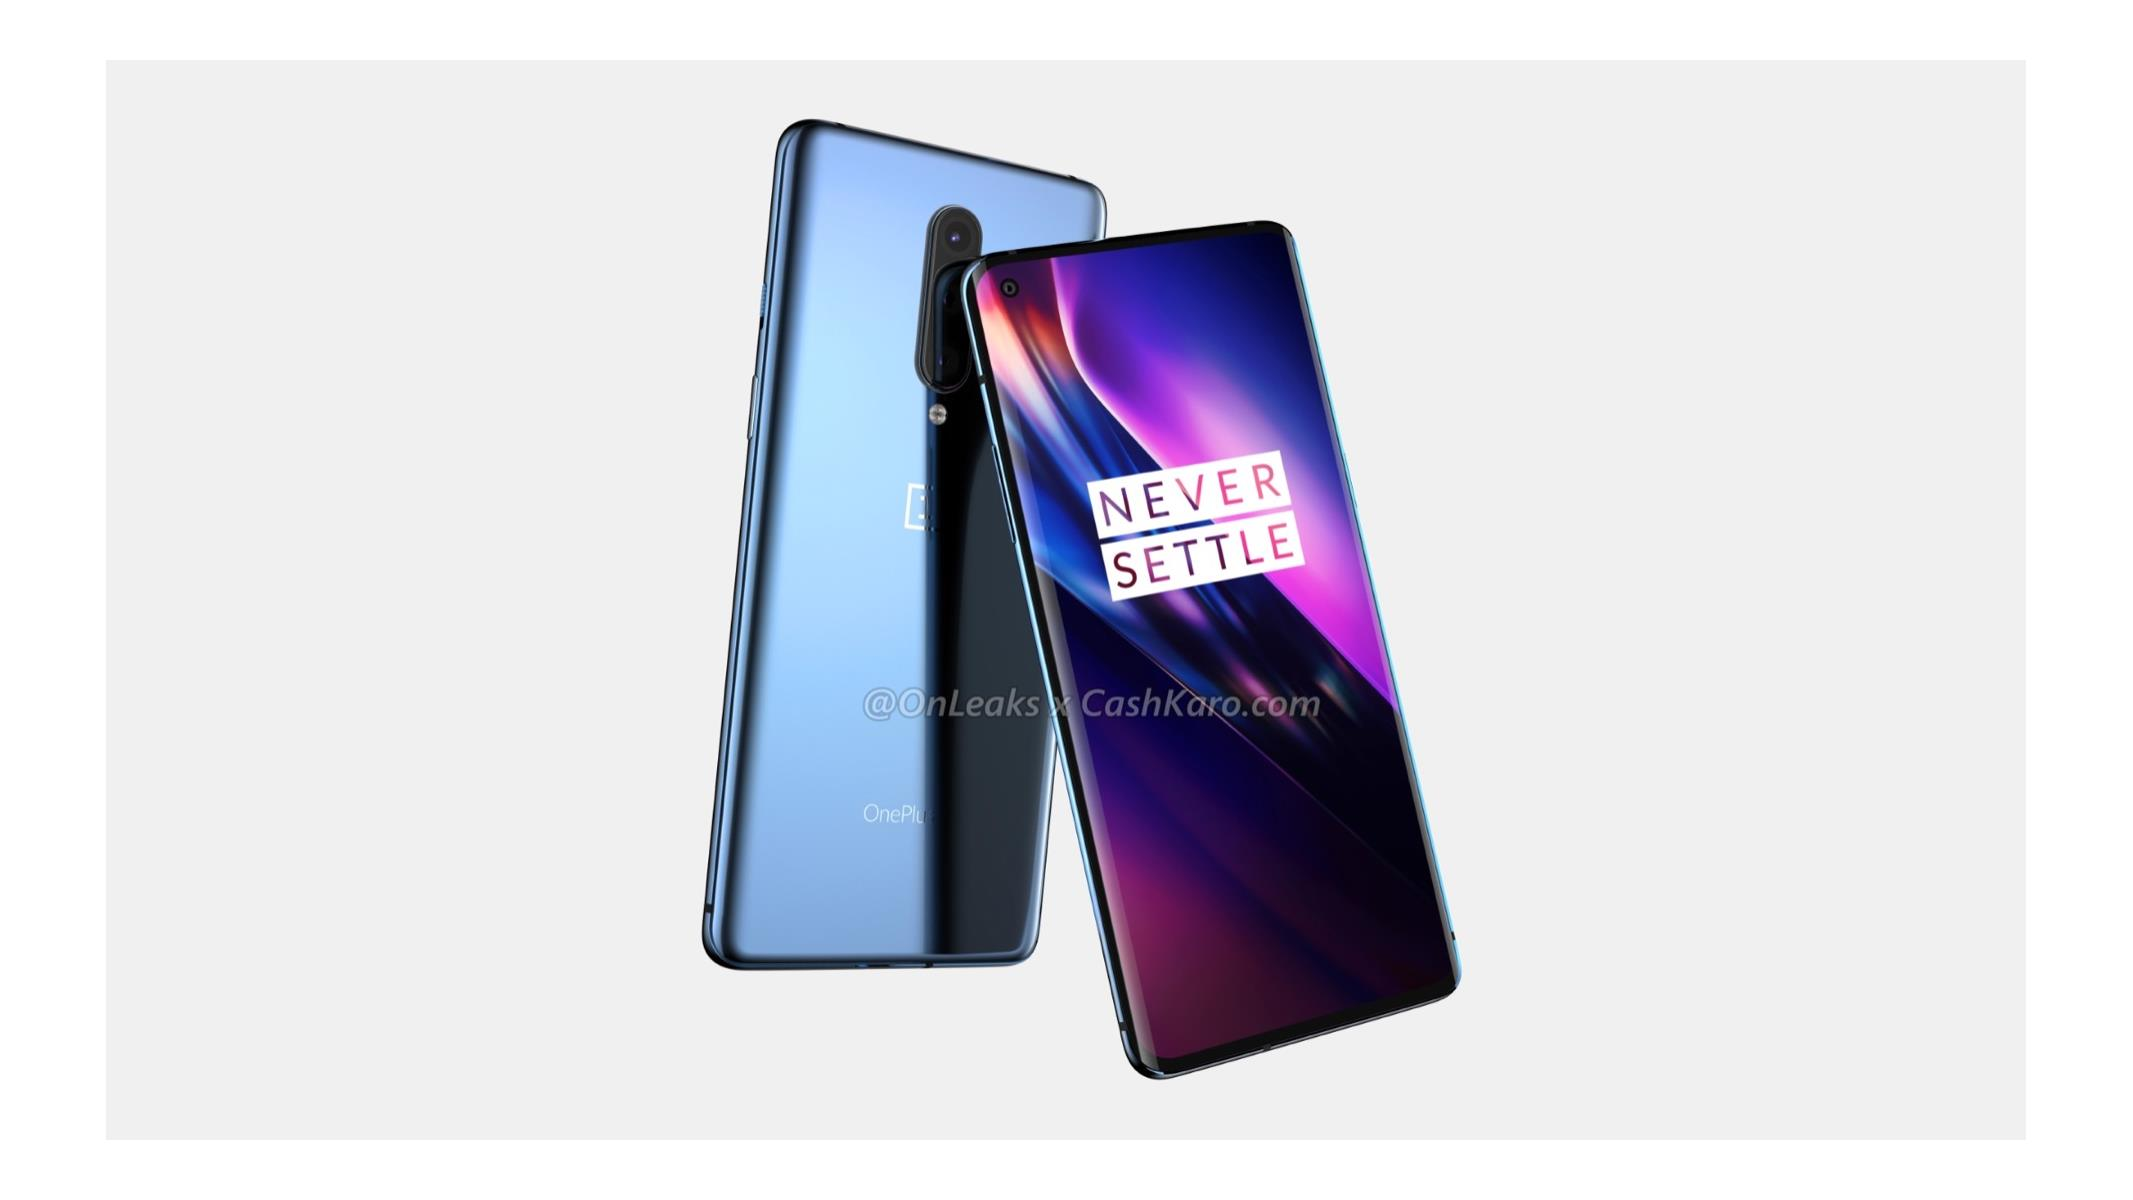 OnePlus 8 Renders Frame Android 10 Flagship With Hole Punch Selfie Cam, Thinner Bezels